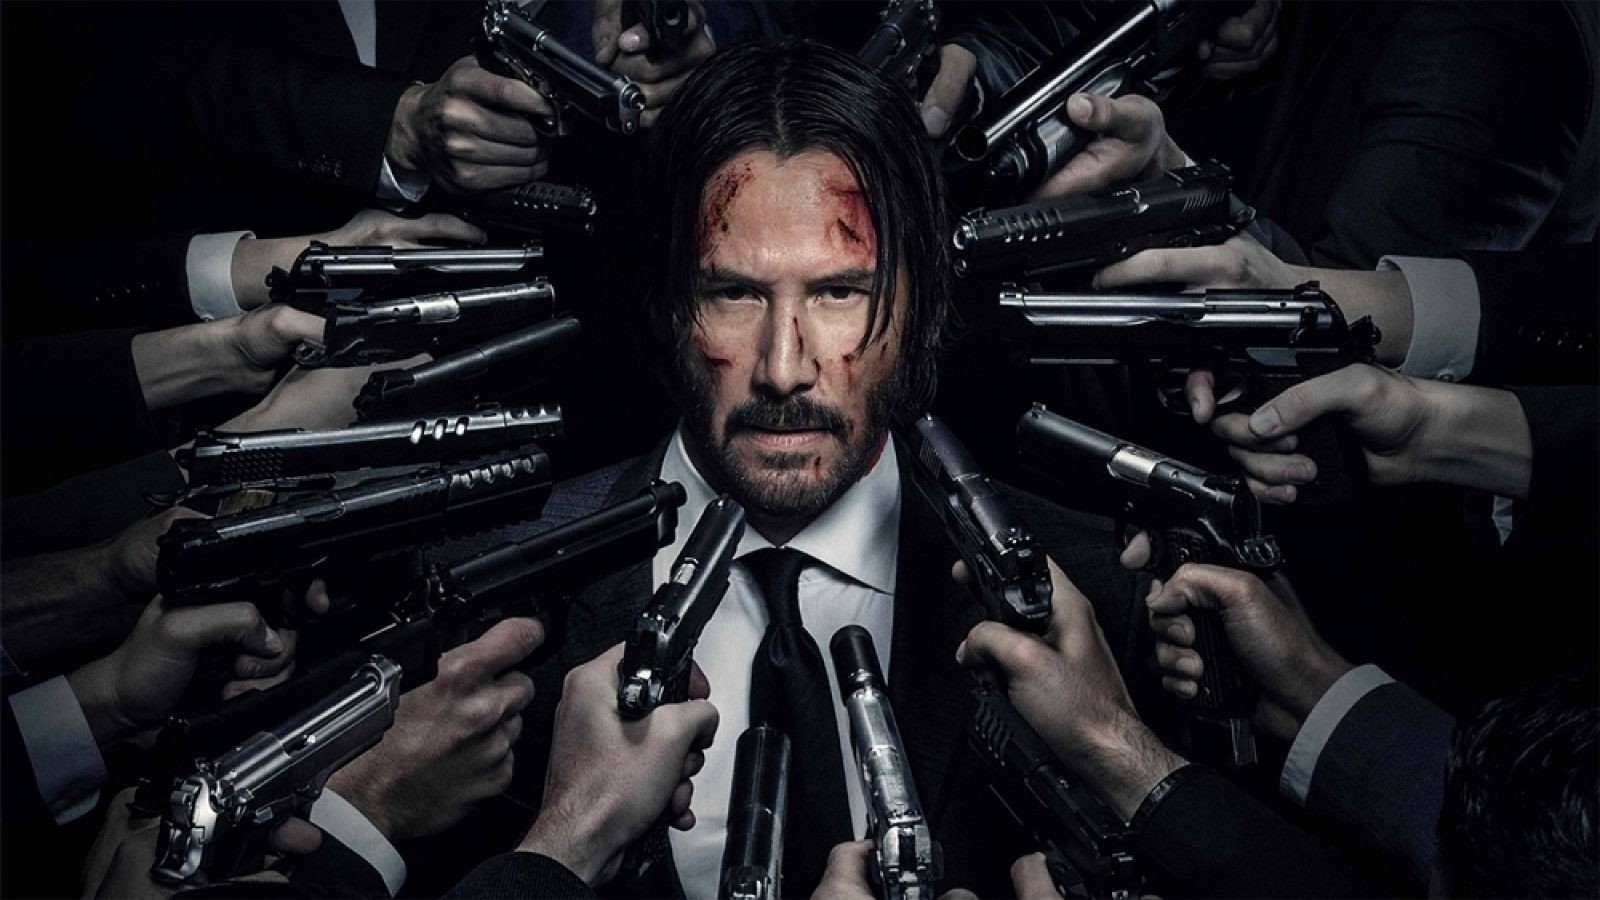 Admit that John Wick is a Garbage Franchise You Cowards | Scene and